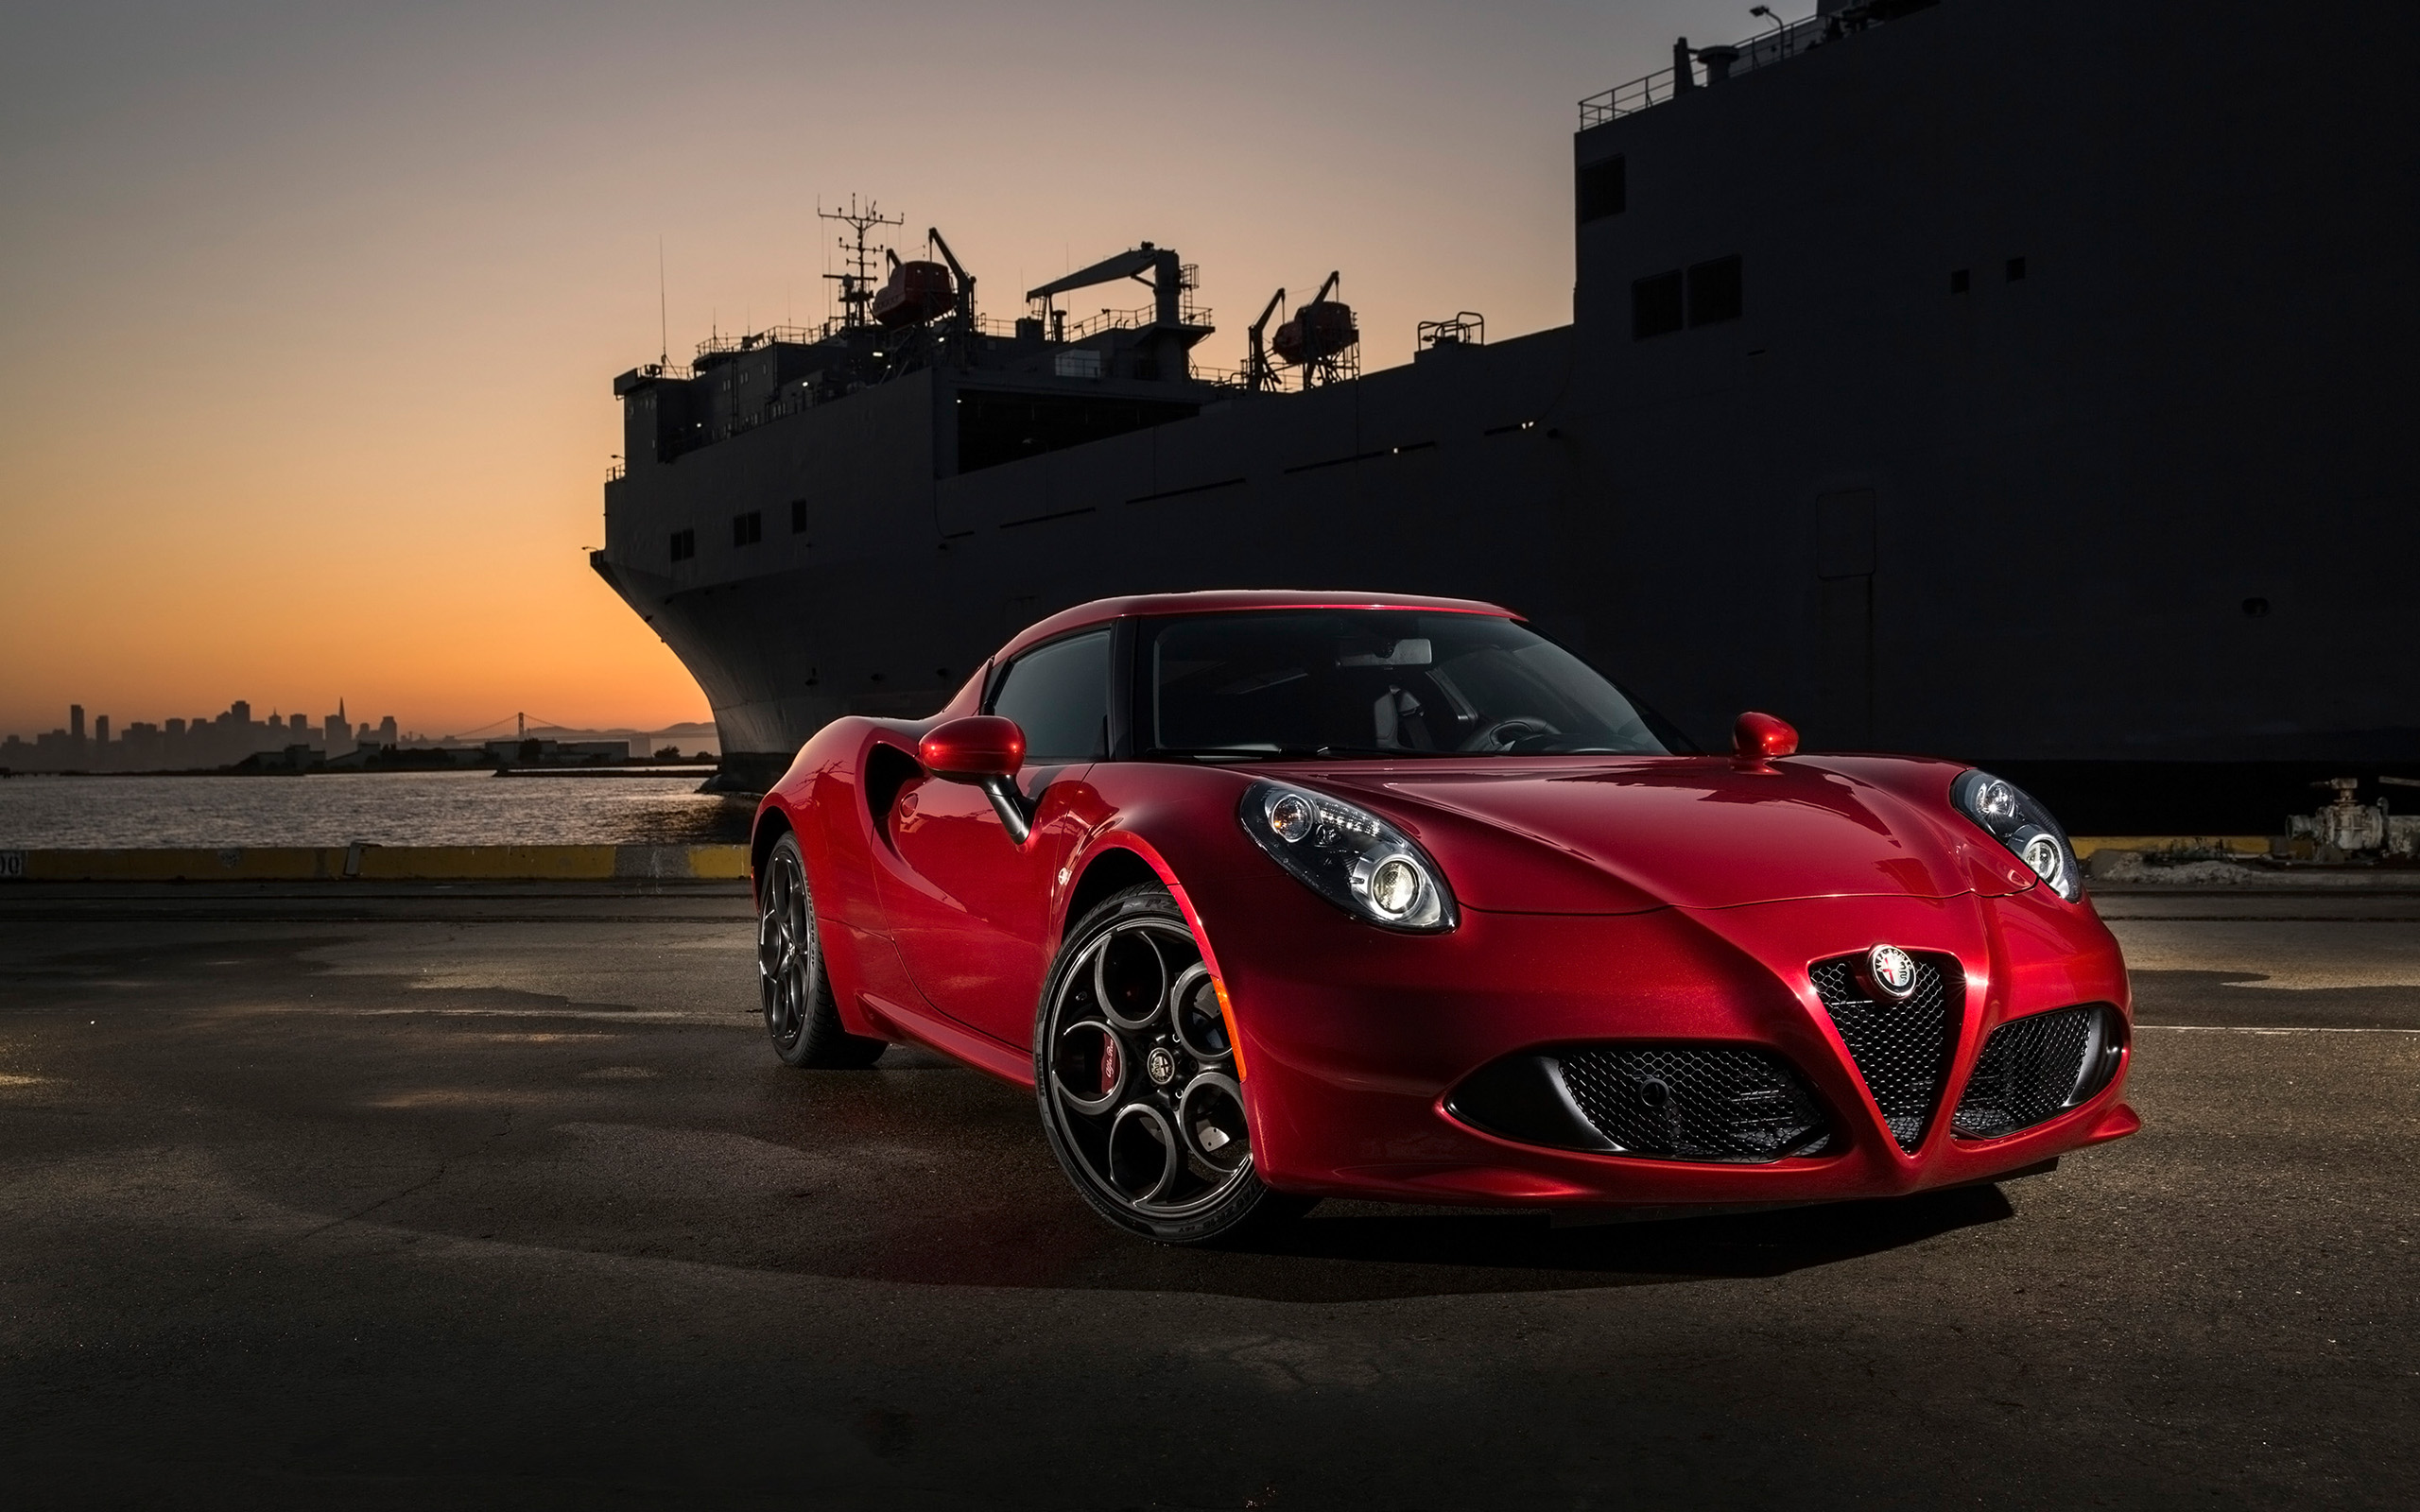 Alfa Romeo 4C Wallpapers and Background Images   stmednet 2560x1600